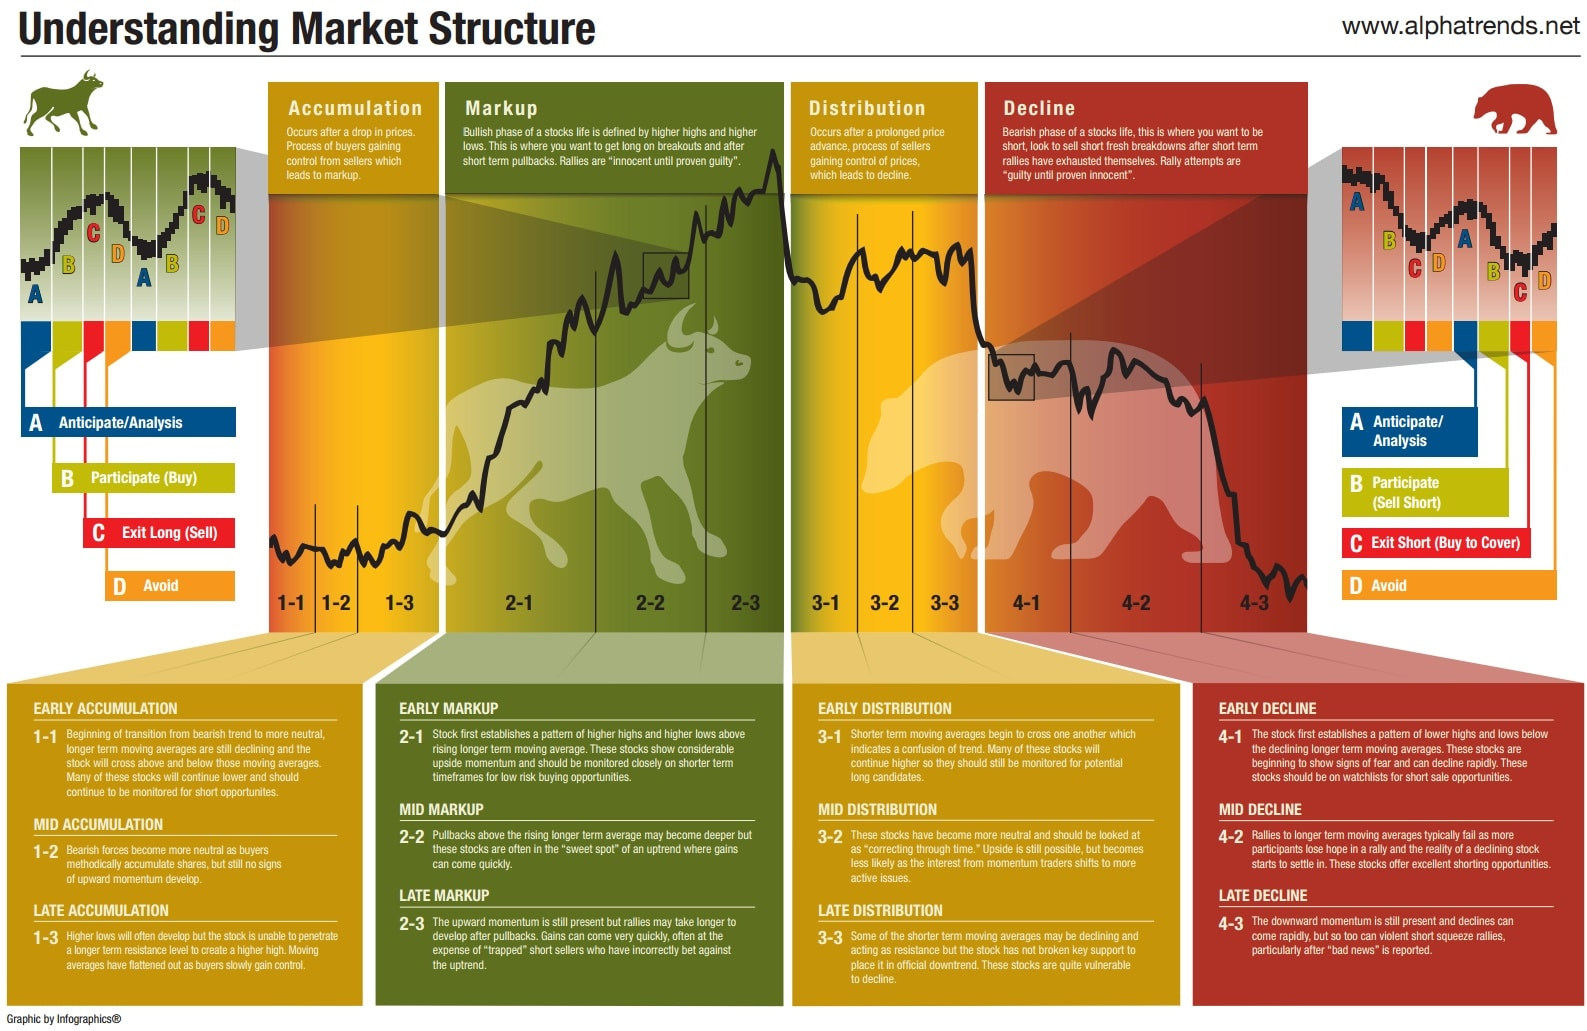 my understanding of market economy A market economy is an economic system in which the decisions regarding investment, production, and distribution are guided by the price signals created by the forces of supply and demand.